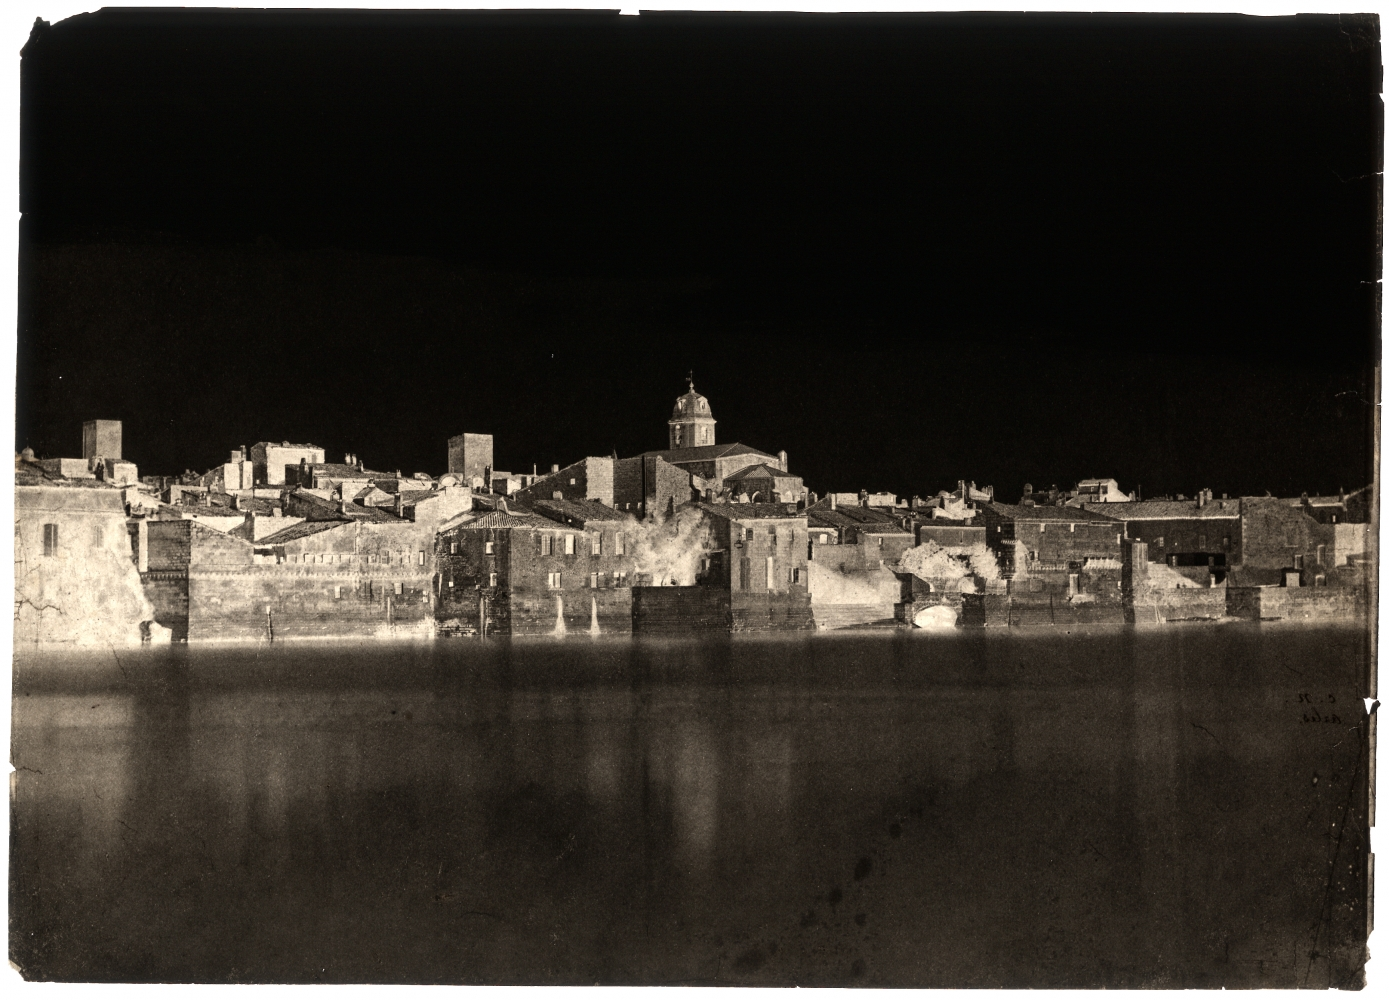 """Charles NÈGRE (French, 1820-1880) View from the banks of the Rhône """"Arles"""", 1852 Waxed paper negative with selectively applied pigment 23.7 x 33.1 cm Initialed """"C.N."""" and titled """"Arles."""" in black ink on verso"""